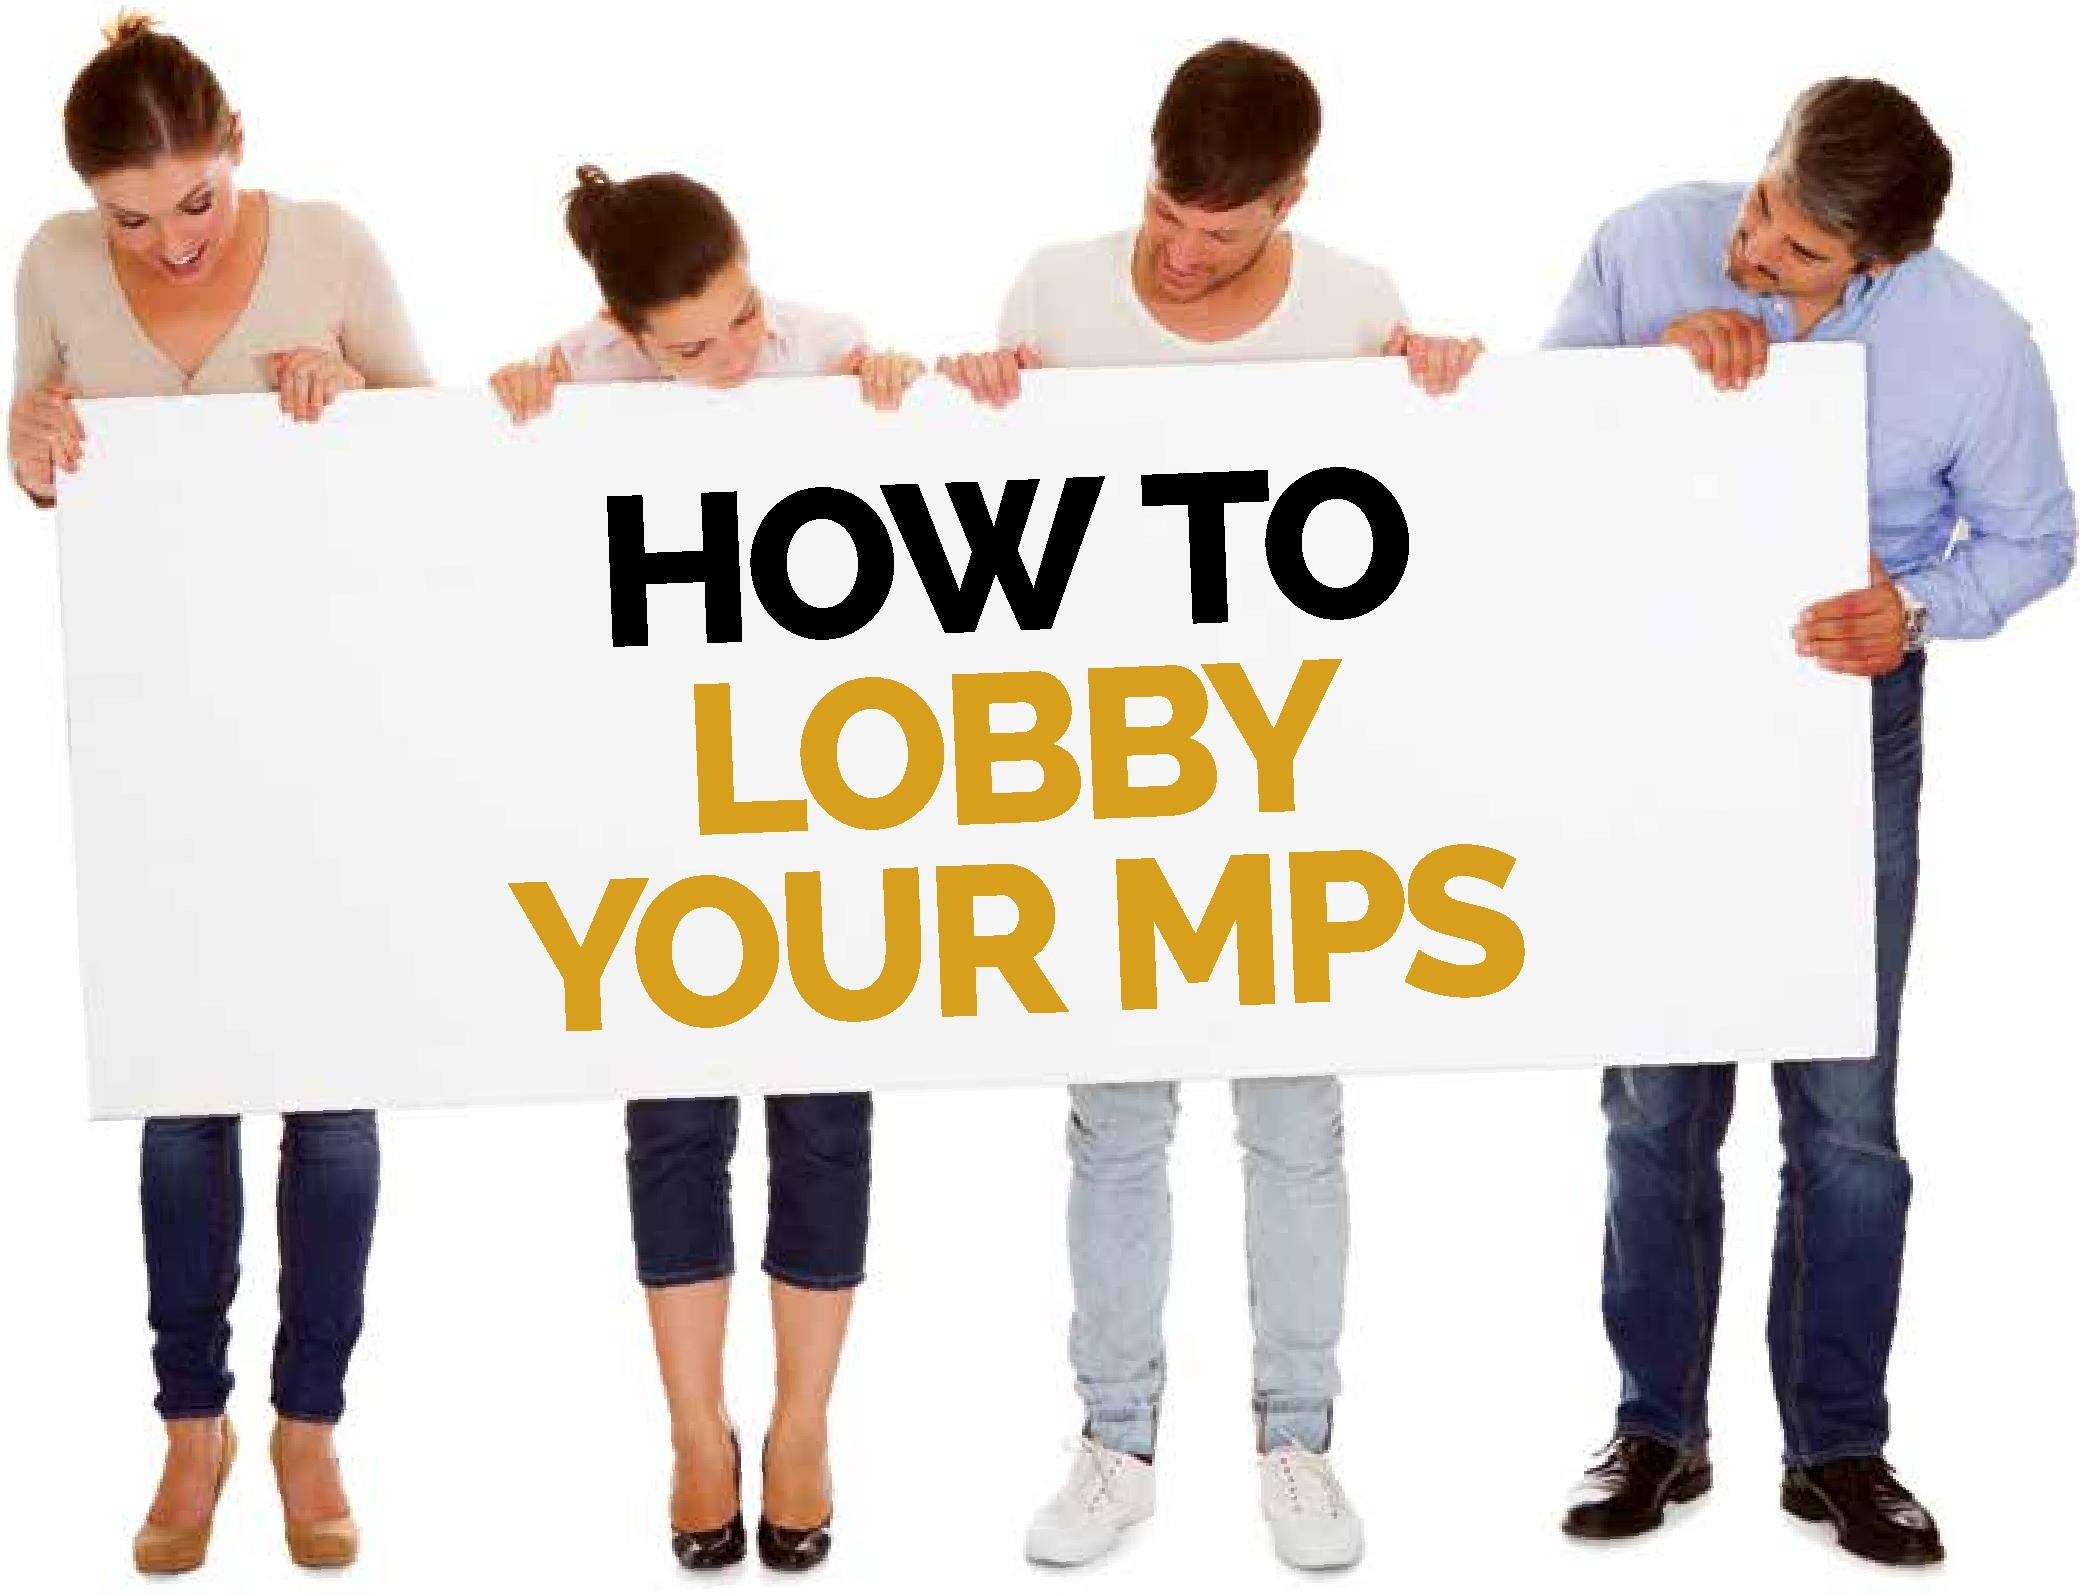 How to Lobby